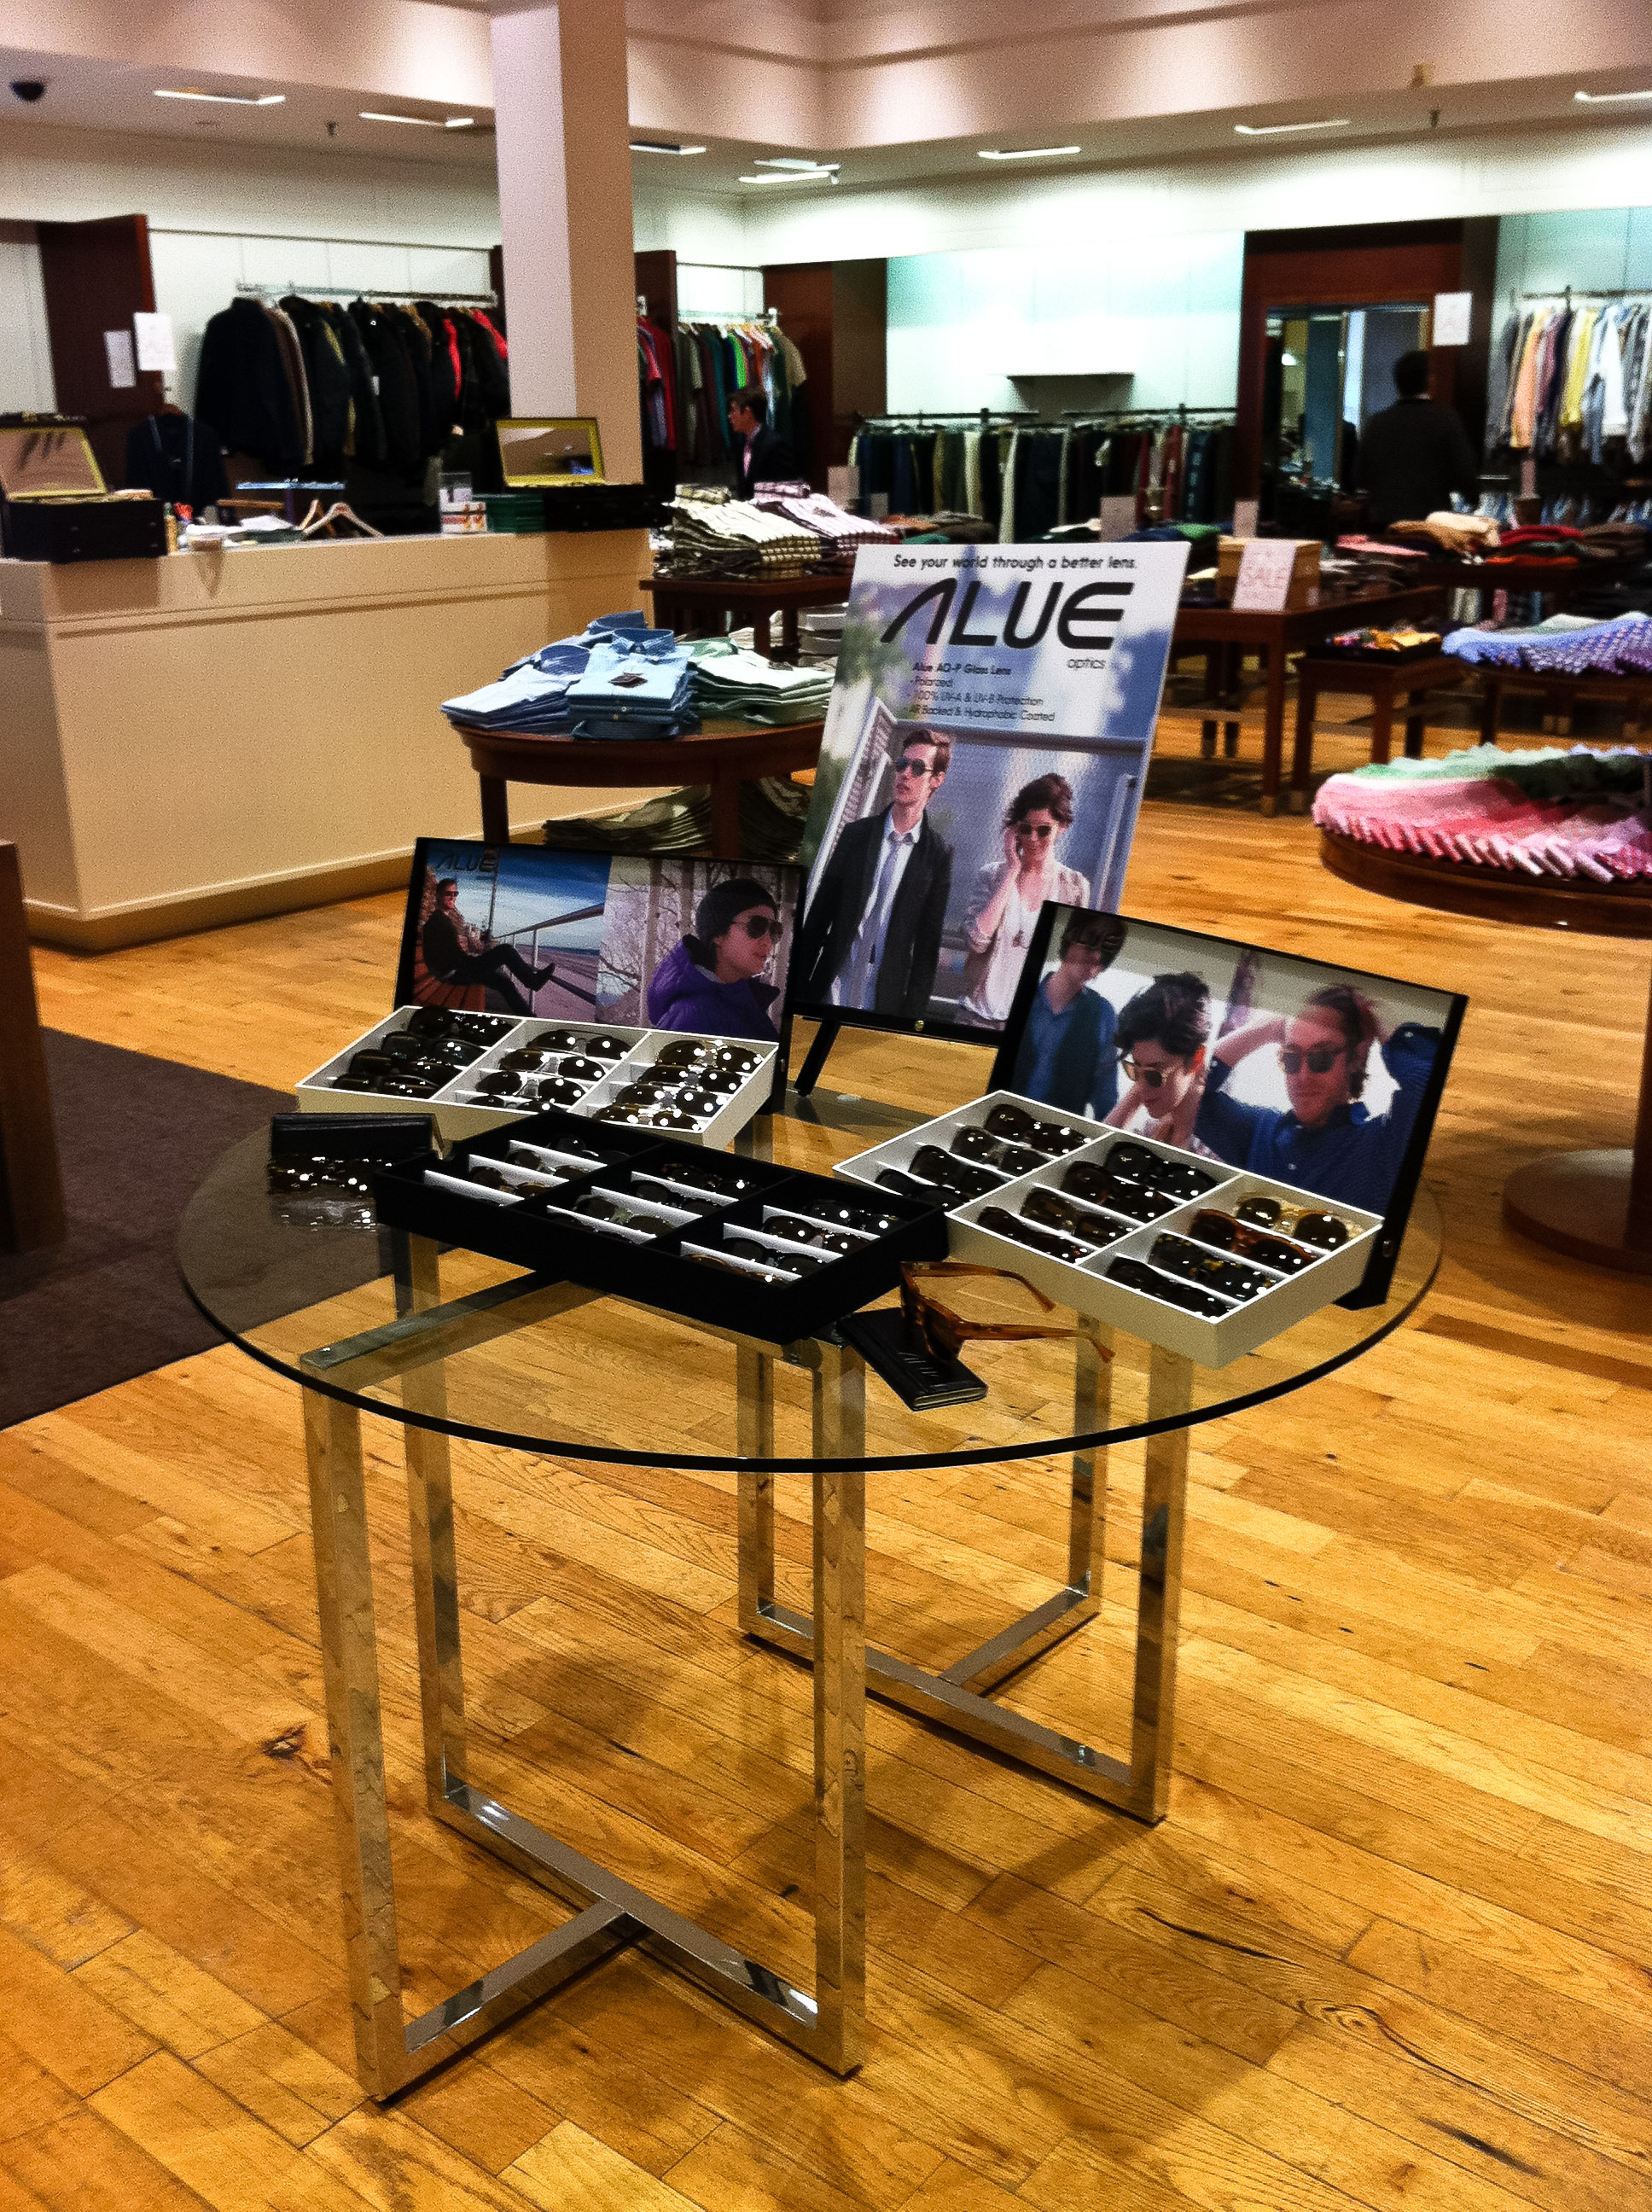 alue optics darien sport trunk show feb 11